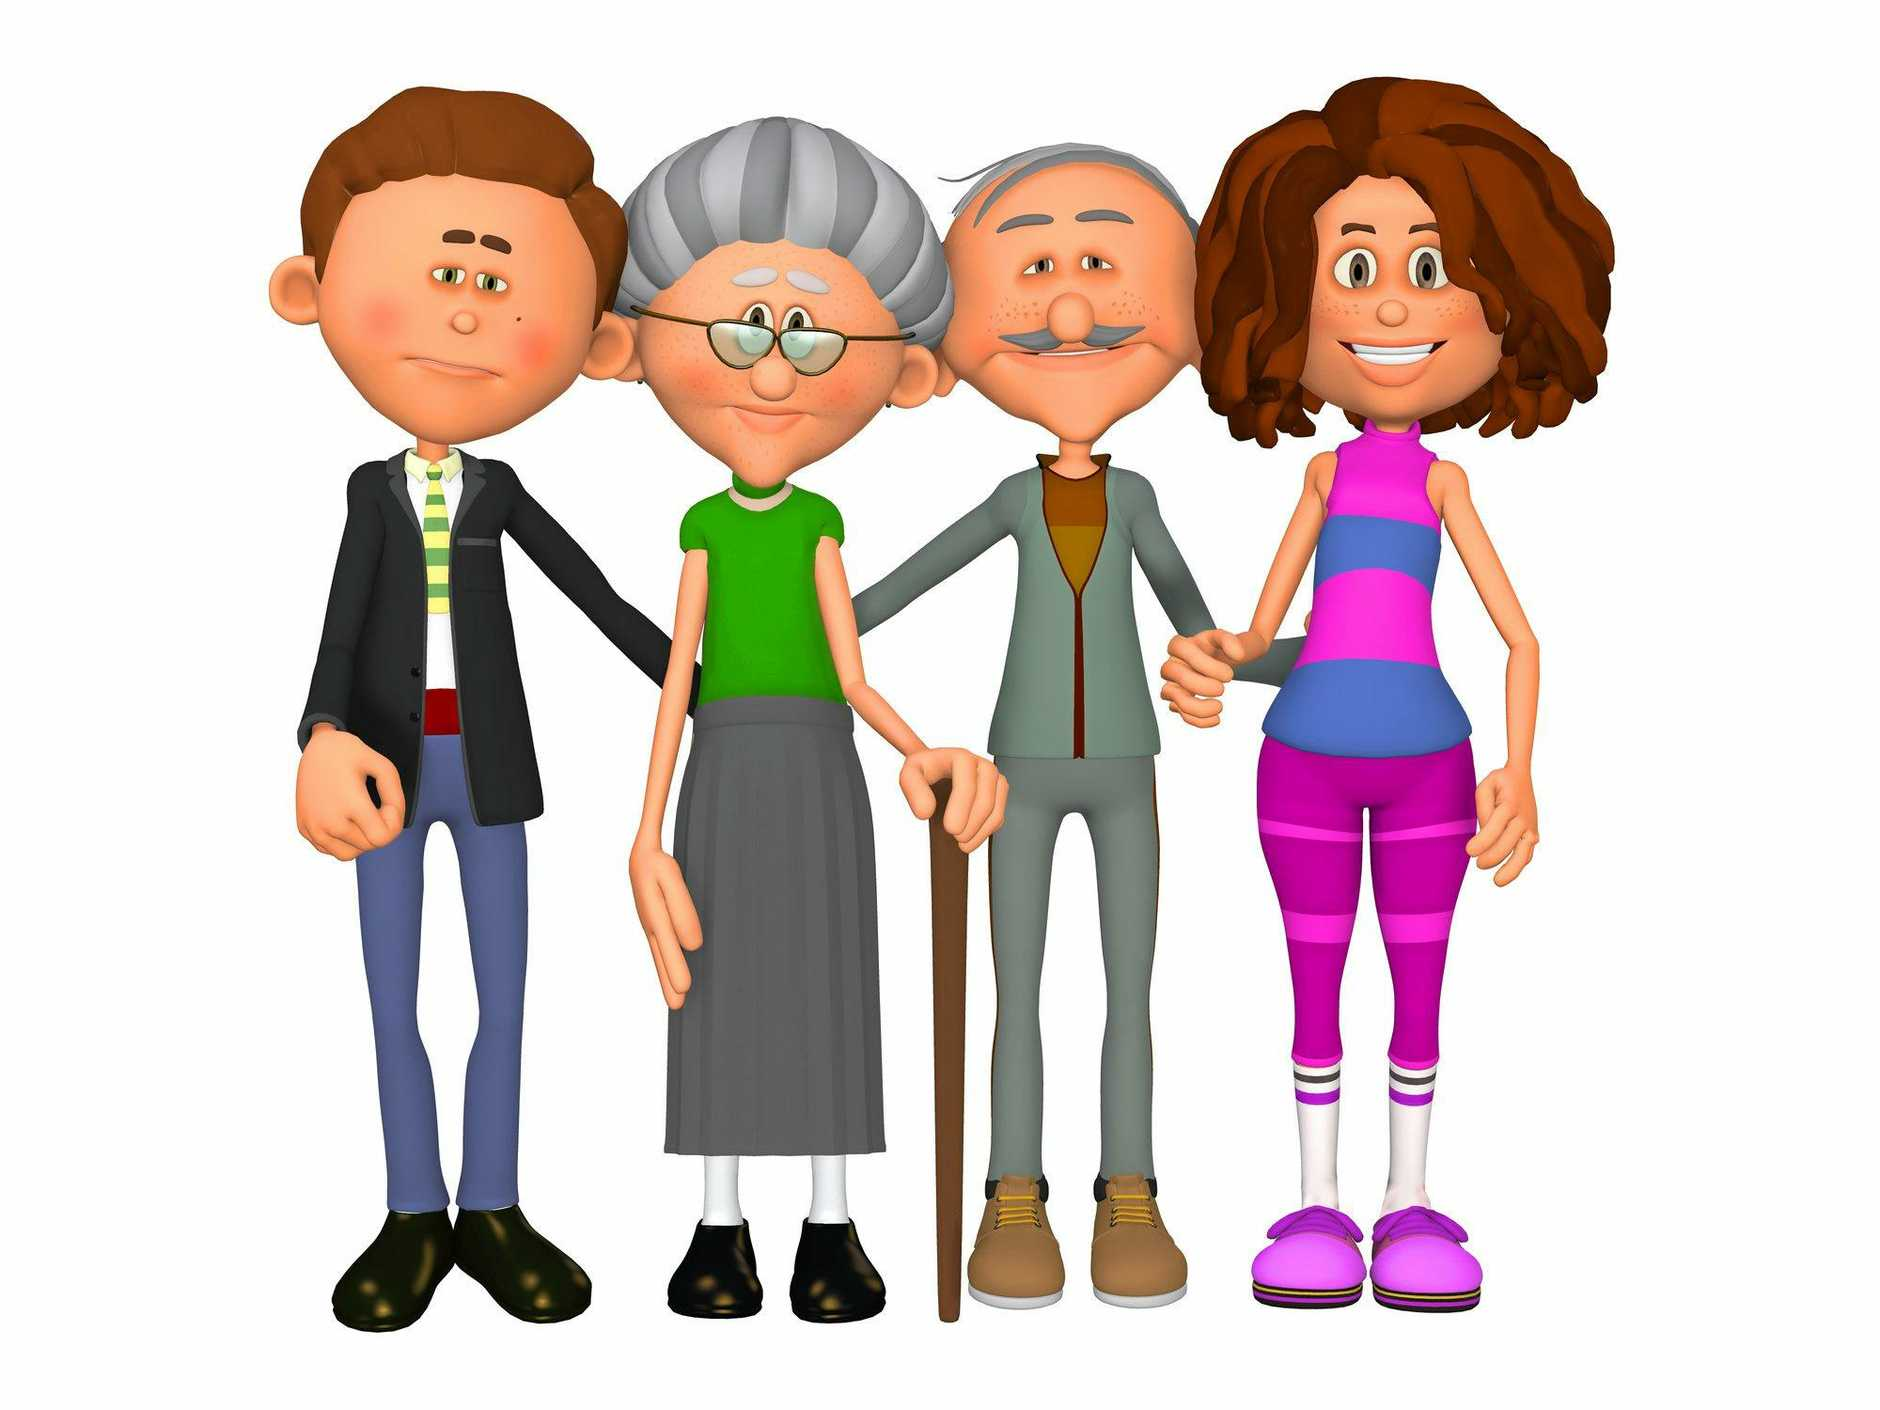 A recent support 'Societal Views on Seniors in Australia' outlines a disconnect rather than a connect between older and younger demographics.